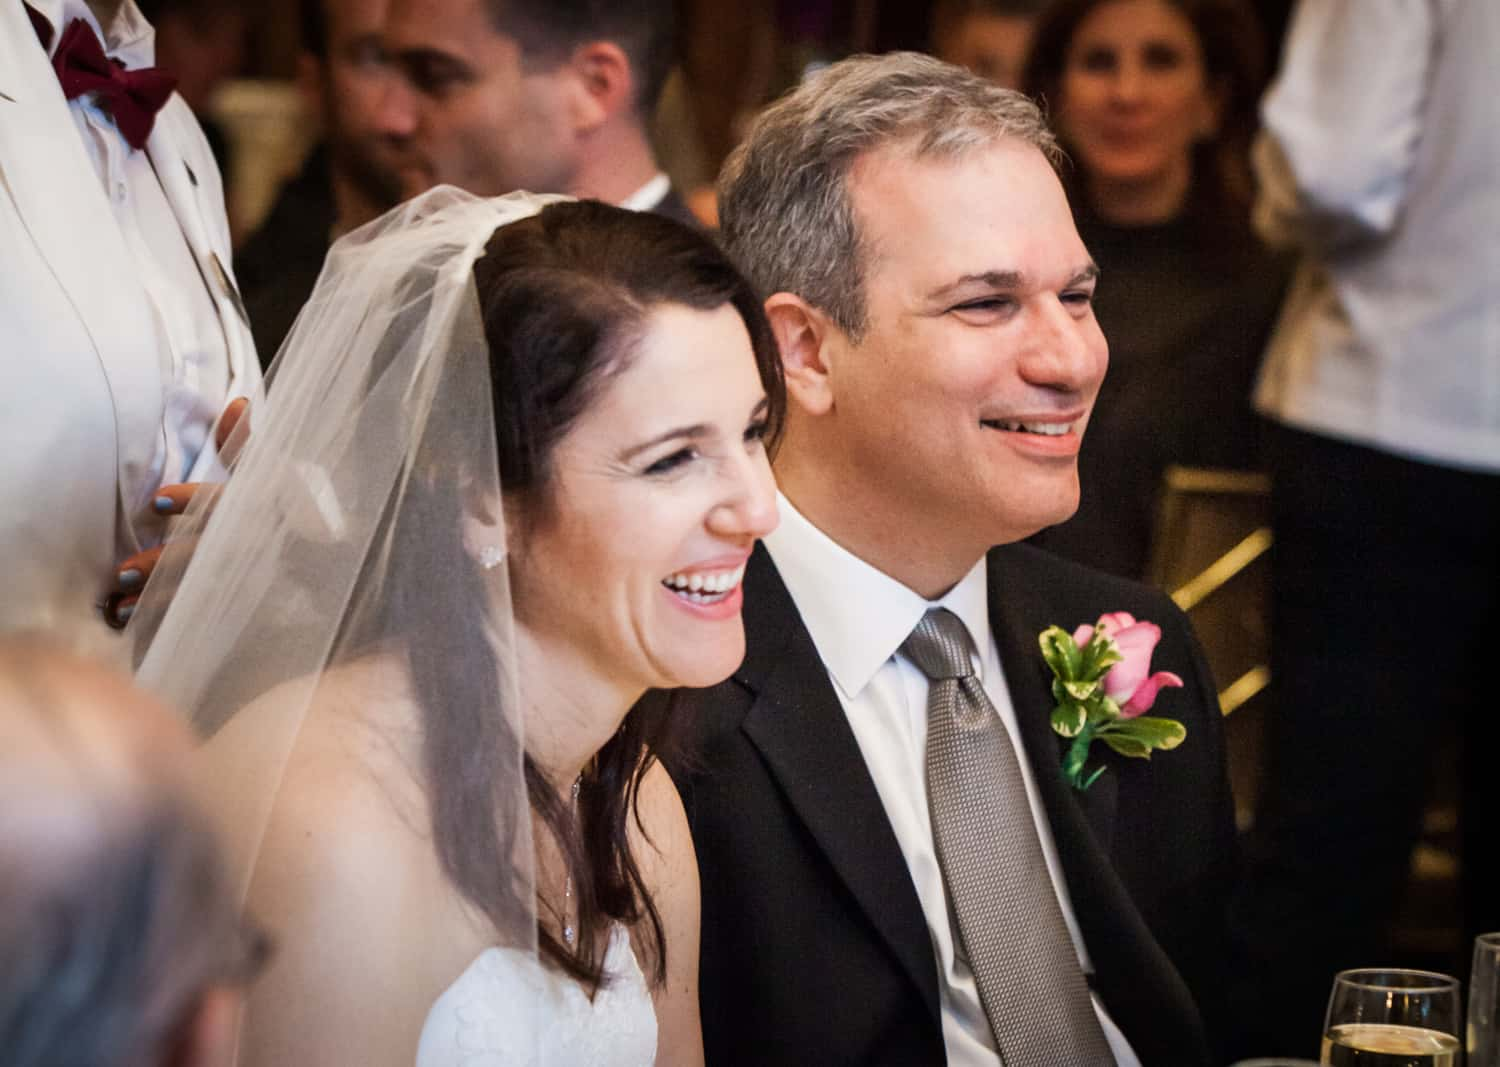 Bride and groom smiling at reception for an article on the mysteries of photo editing